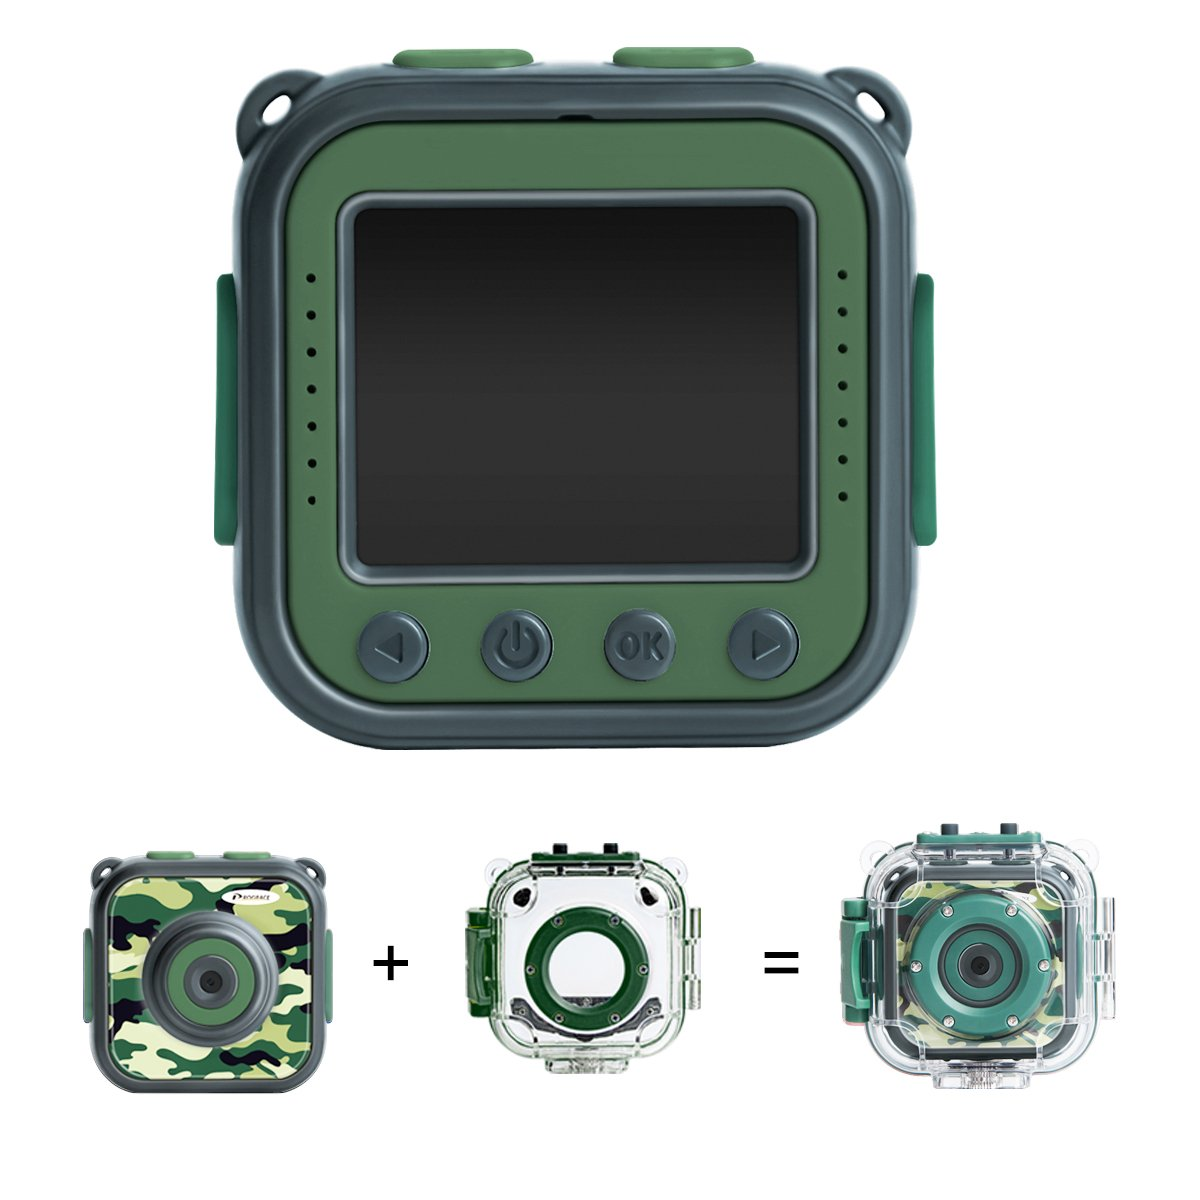 [Upgraded] PROGRACE Kids Camera Waterproof Action Video Digital Camera 1080 HD Camcorder for Boys Toys Gifts Build-in Game(Green)